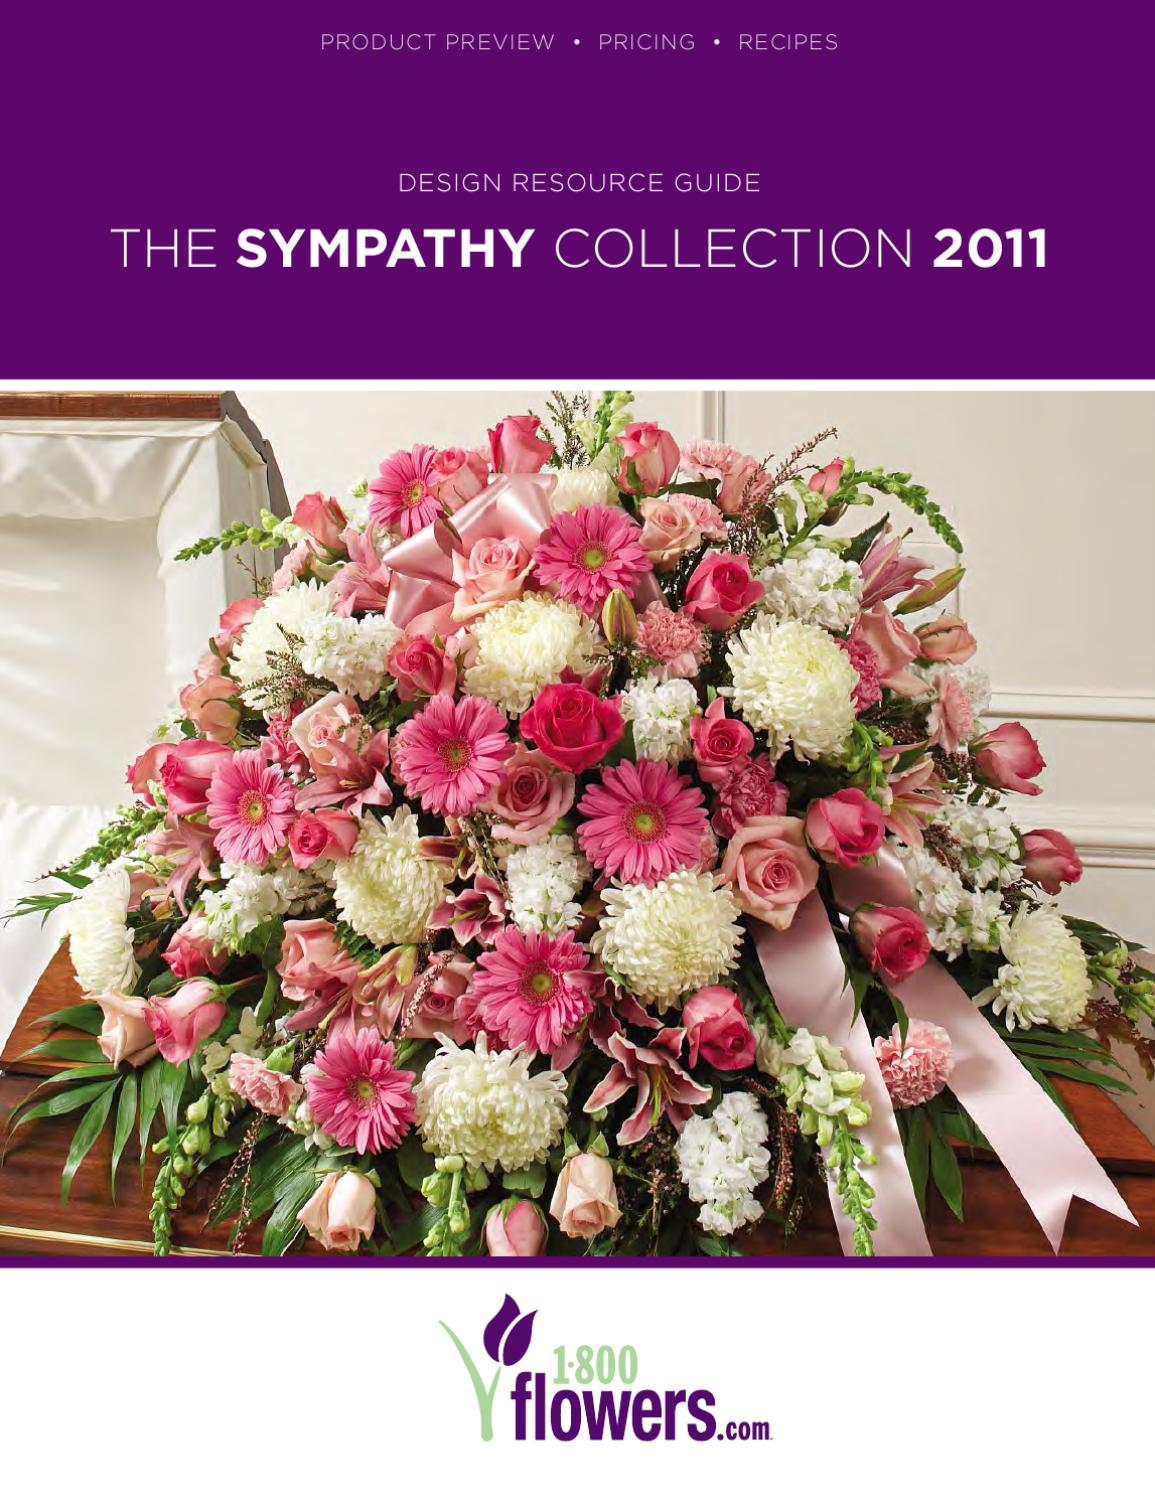 1-800-FLOWERS.COM Sympathy Collection 2011 by BloomNet - issuu